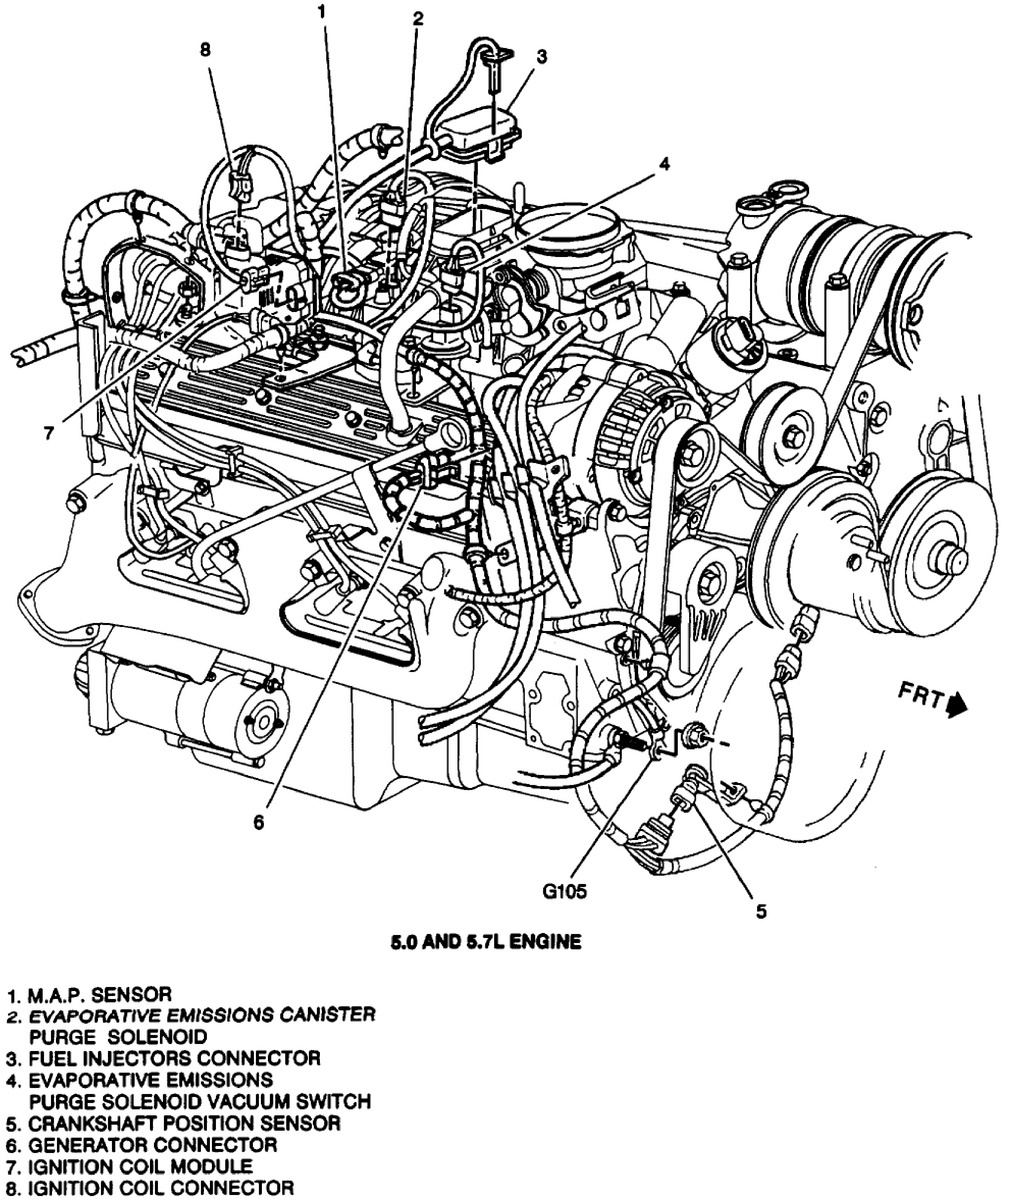 hight resolution of 2011 chevy suburban engine diagram wiring diagram img 2011 chevy silverado engine diagram 2011 silverado engine diagram